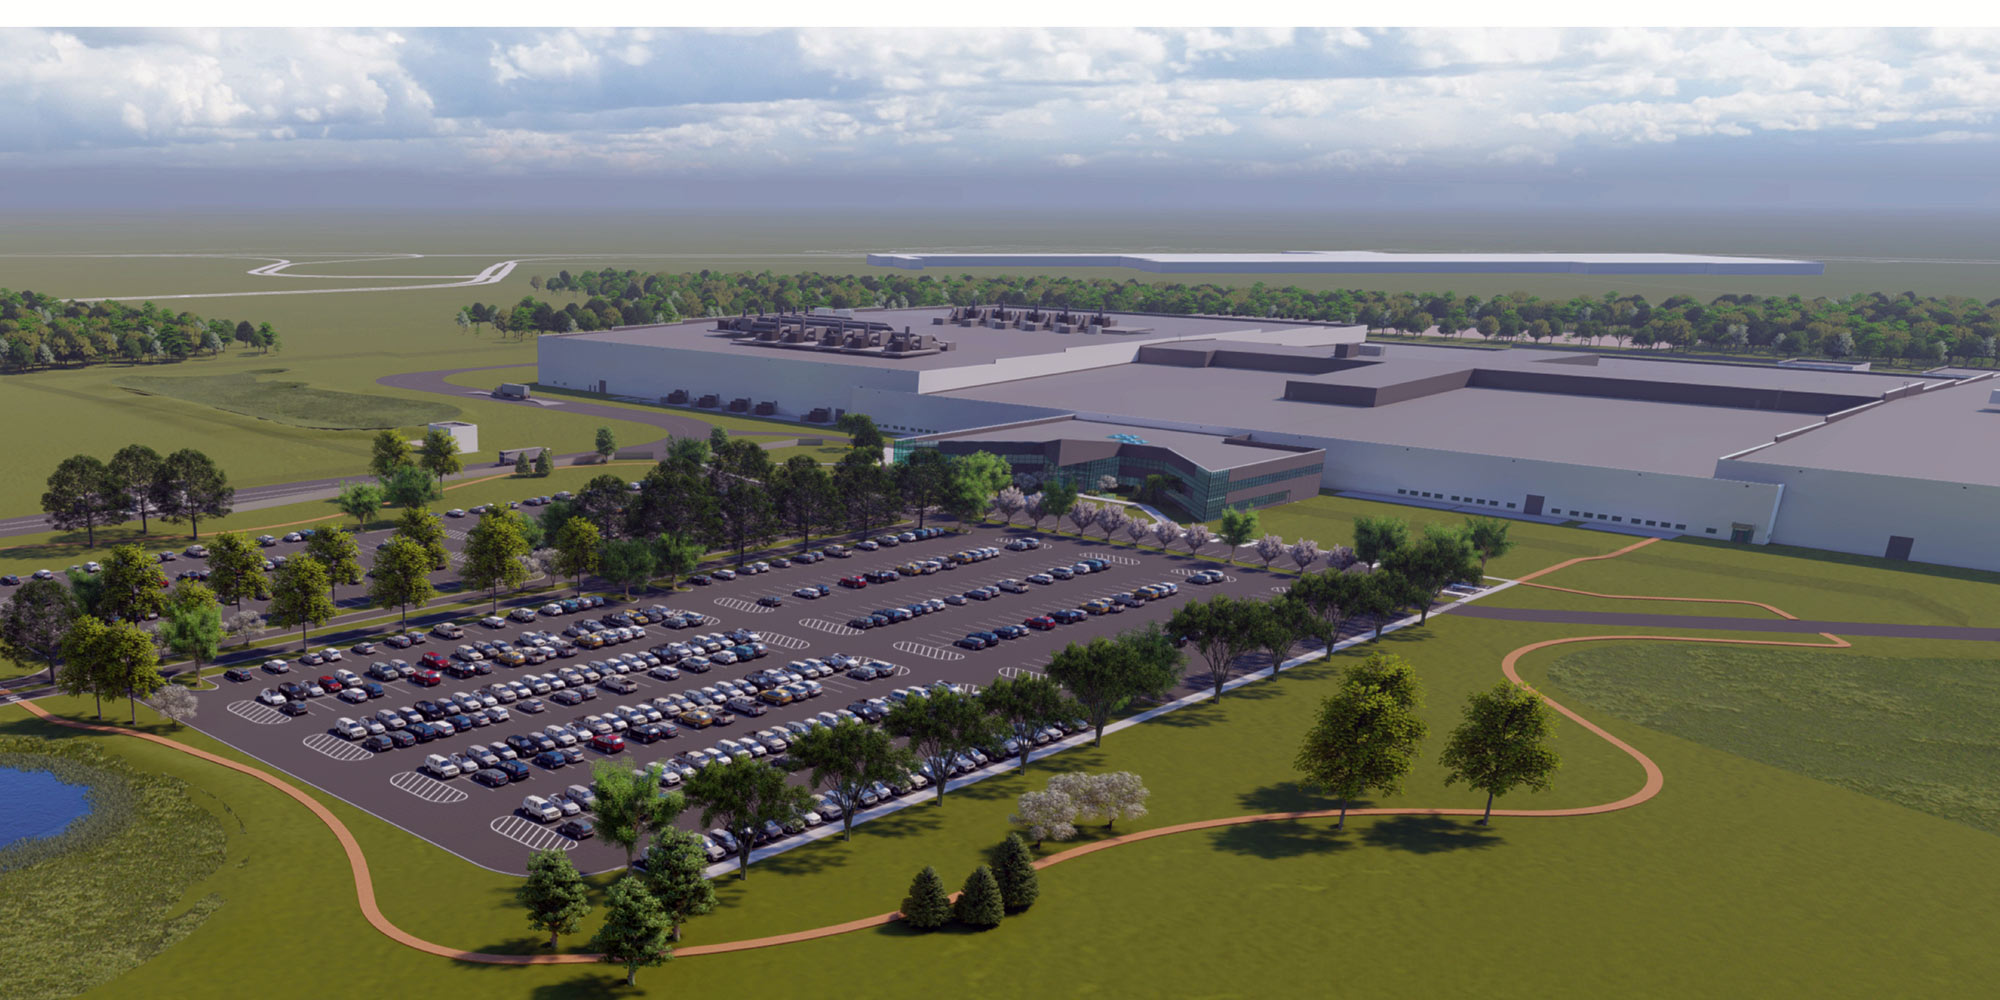 Rendering of GM-LG Chem facility in Lordstown, Ohio